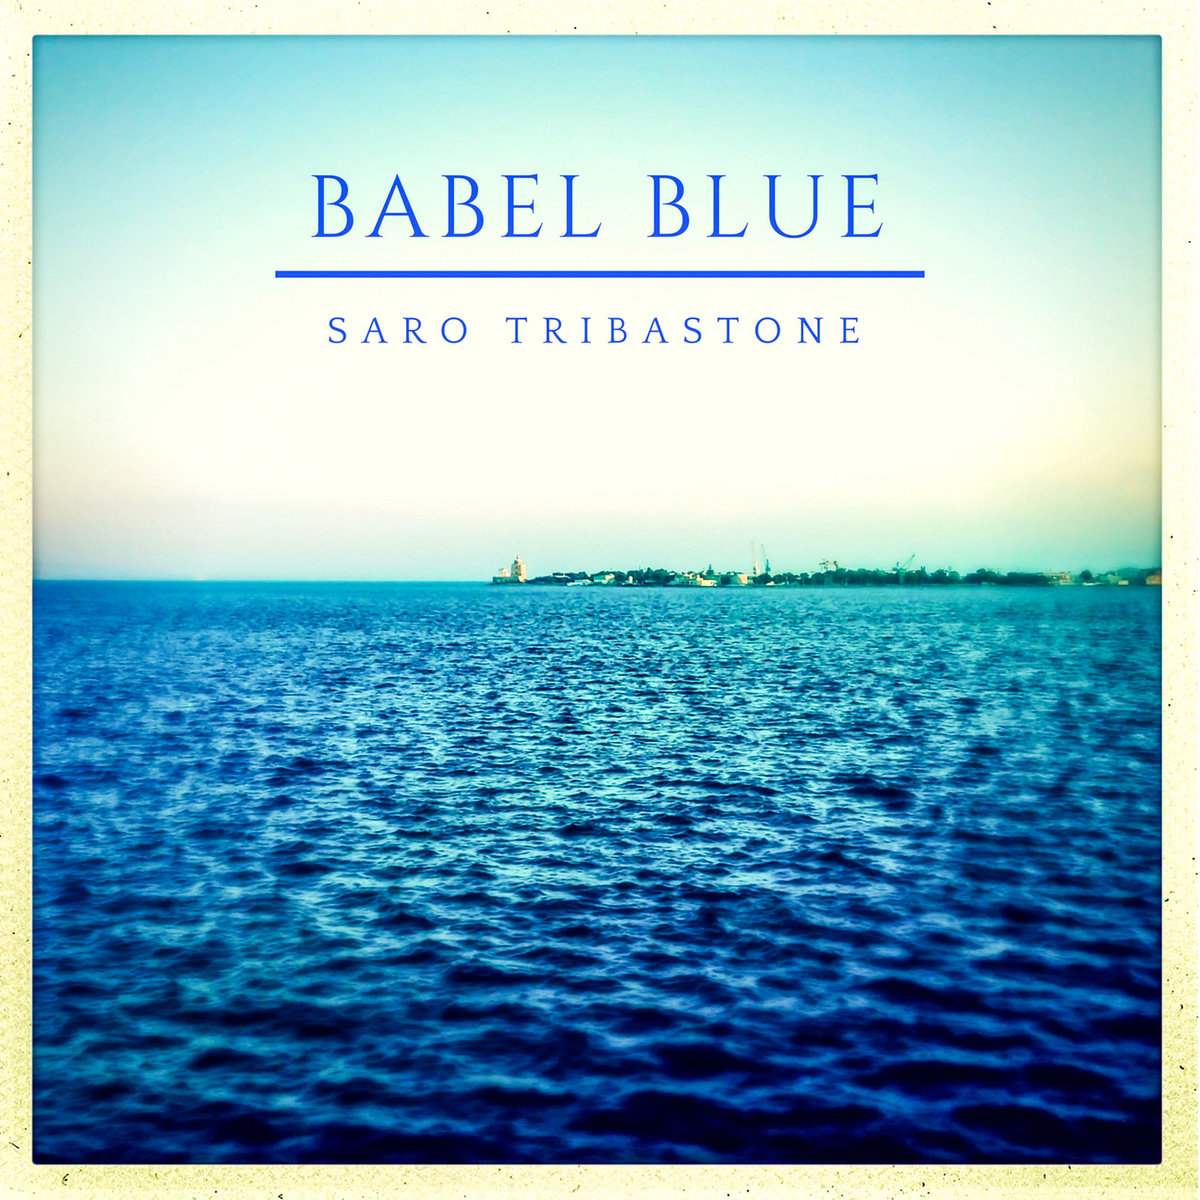 Babel Blue by Saro Tribastone